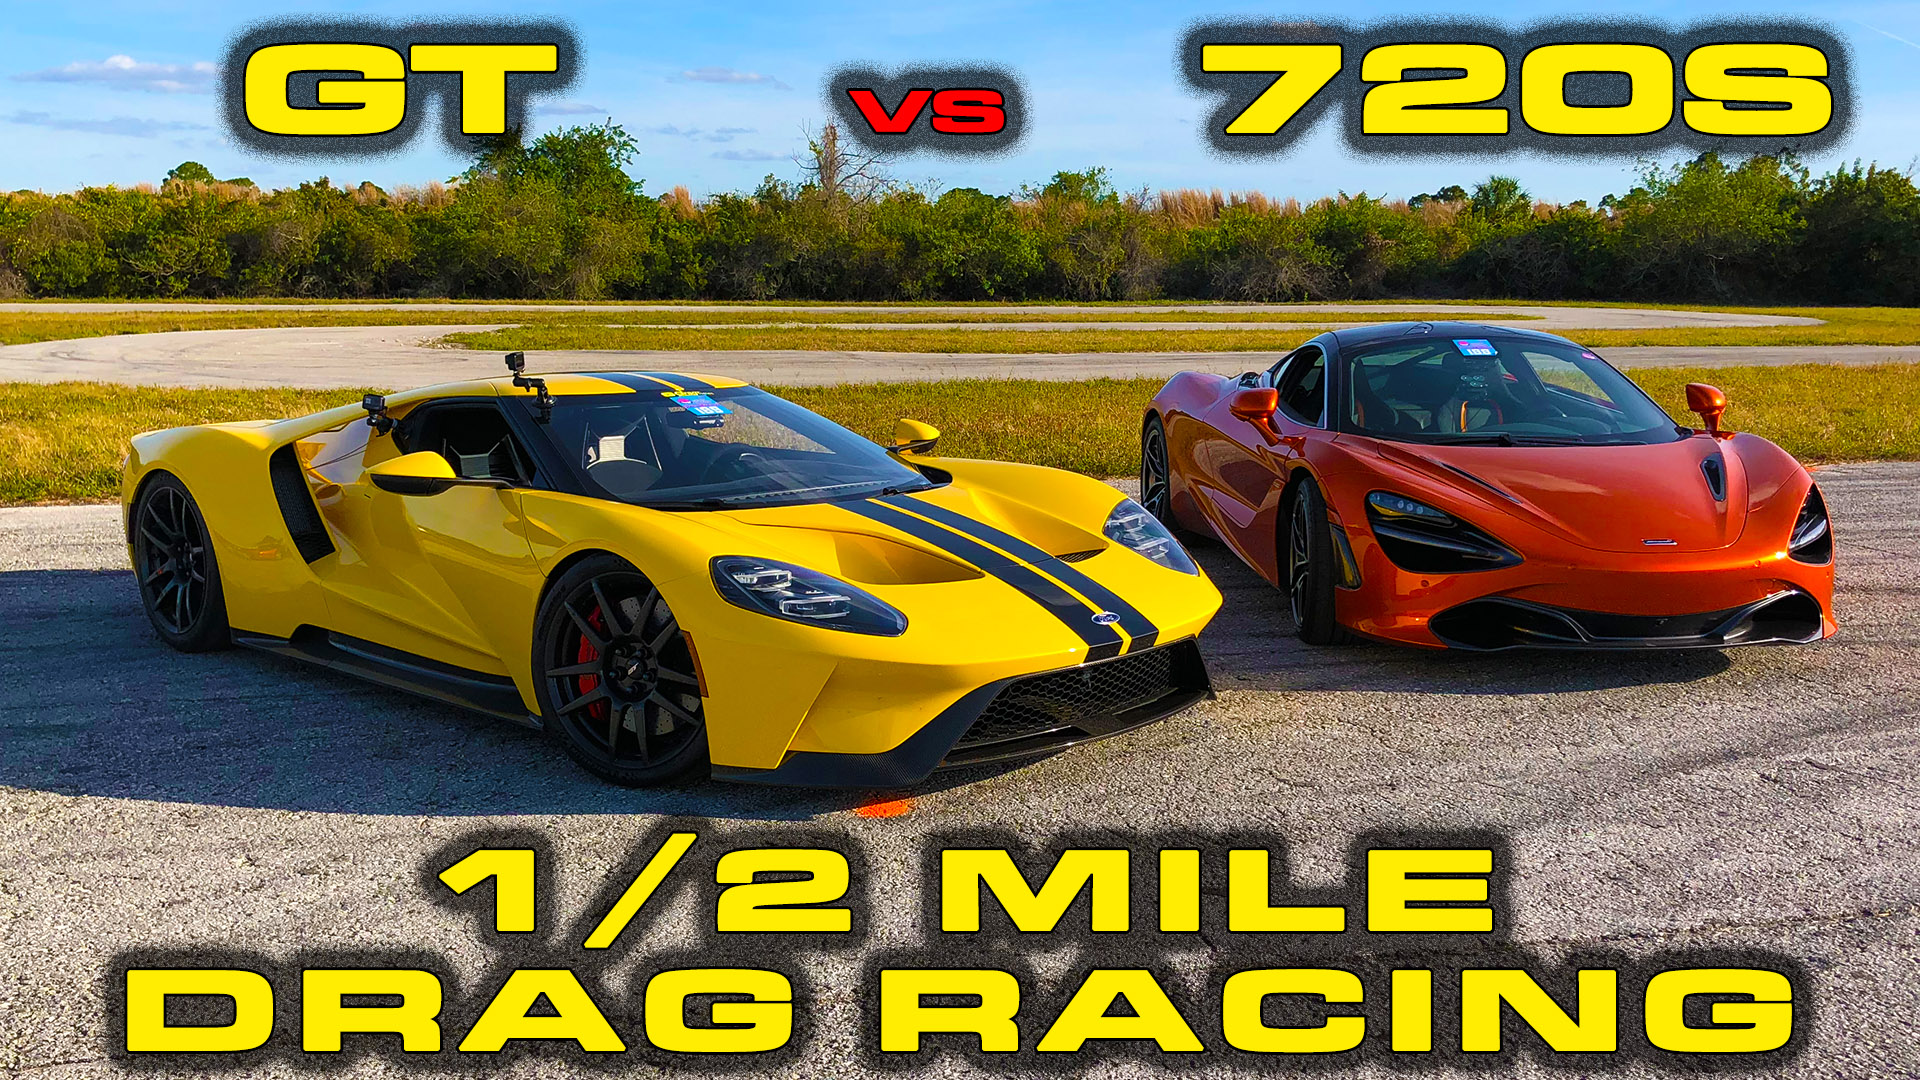 Ford GT vs McLaren 720S 1/2 Mile Racing